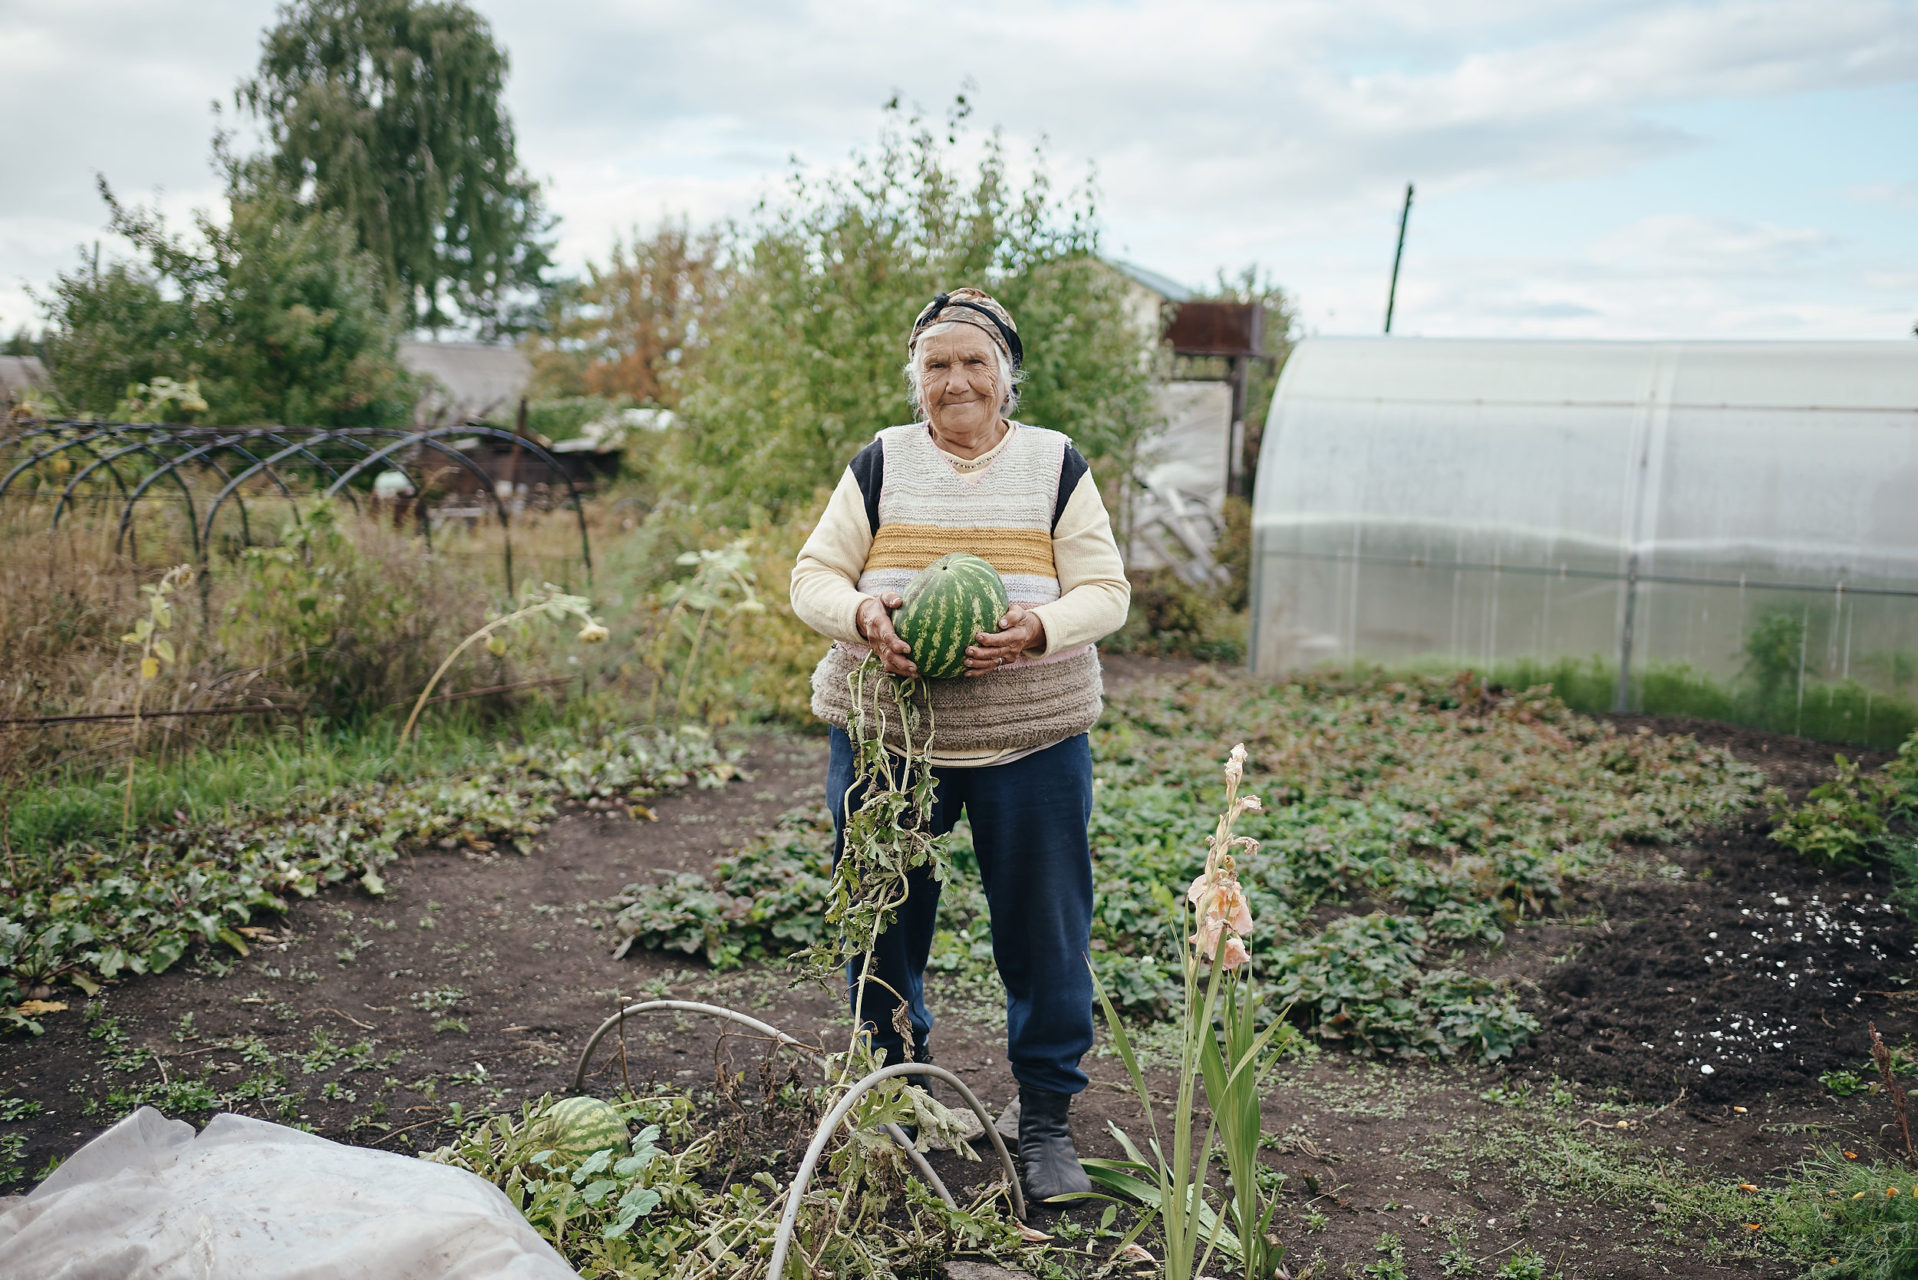 Alexandra Nikolaevna, 83. For people at retirement age, dacha is a habit and a great way to get busy, and to grow crops to eat during the winter. A recent increase of a retirement age in Russia will likely increase the importance of the grown food for dachnikis.